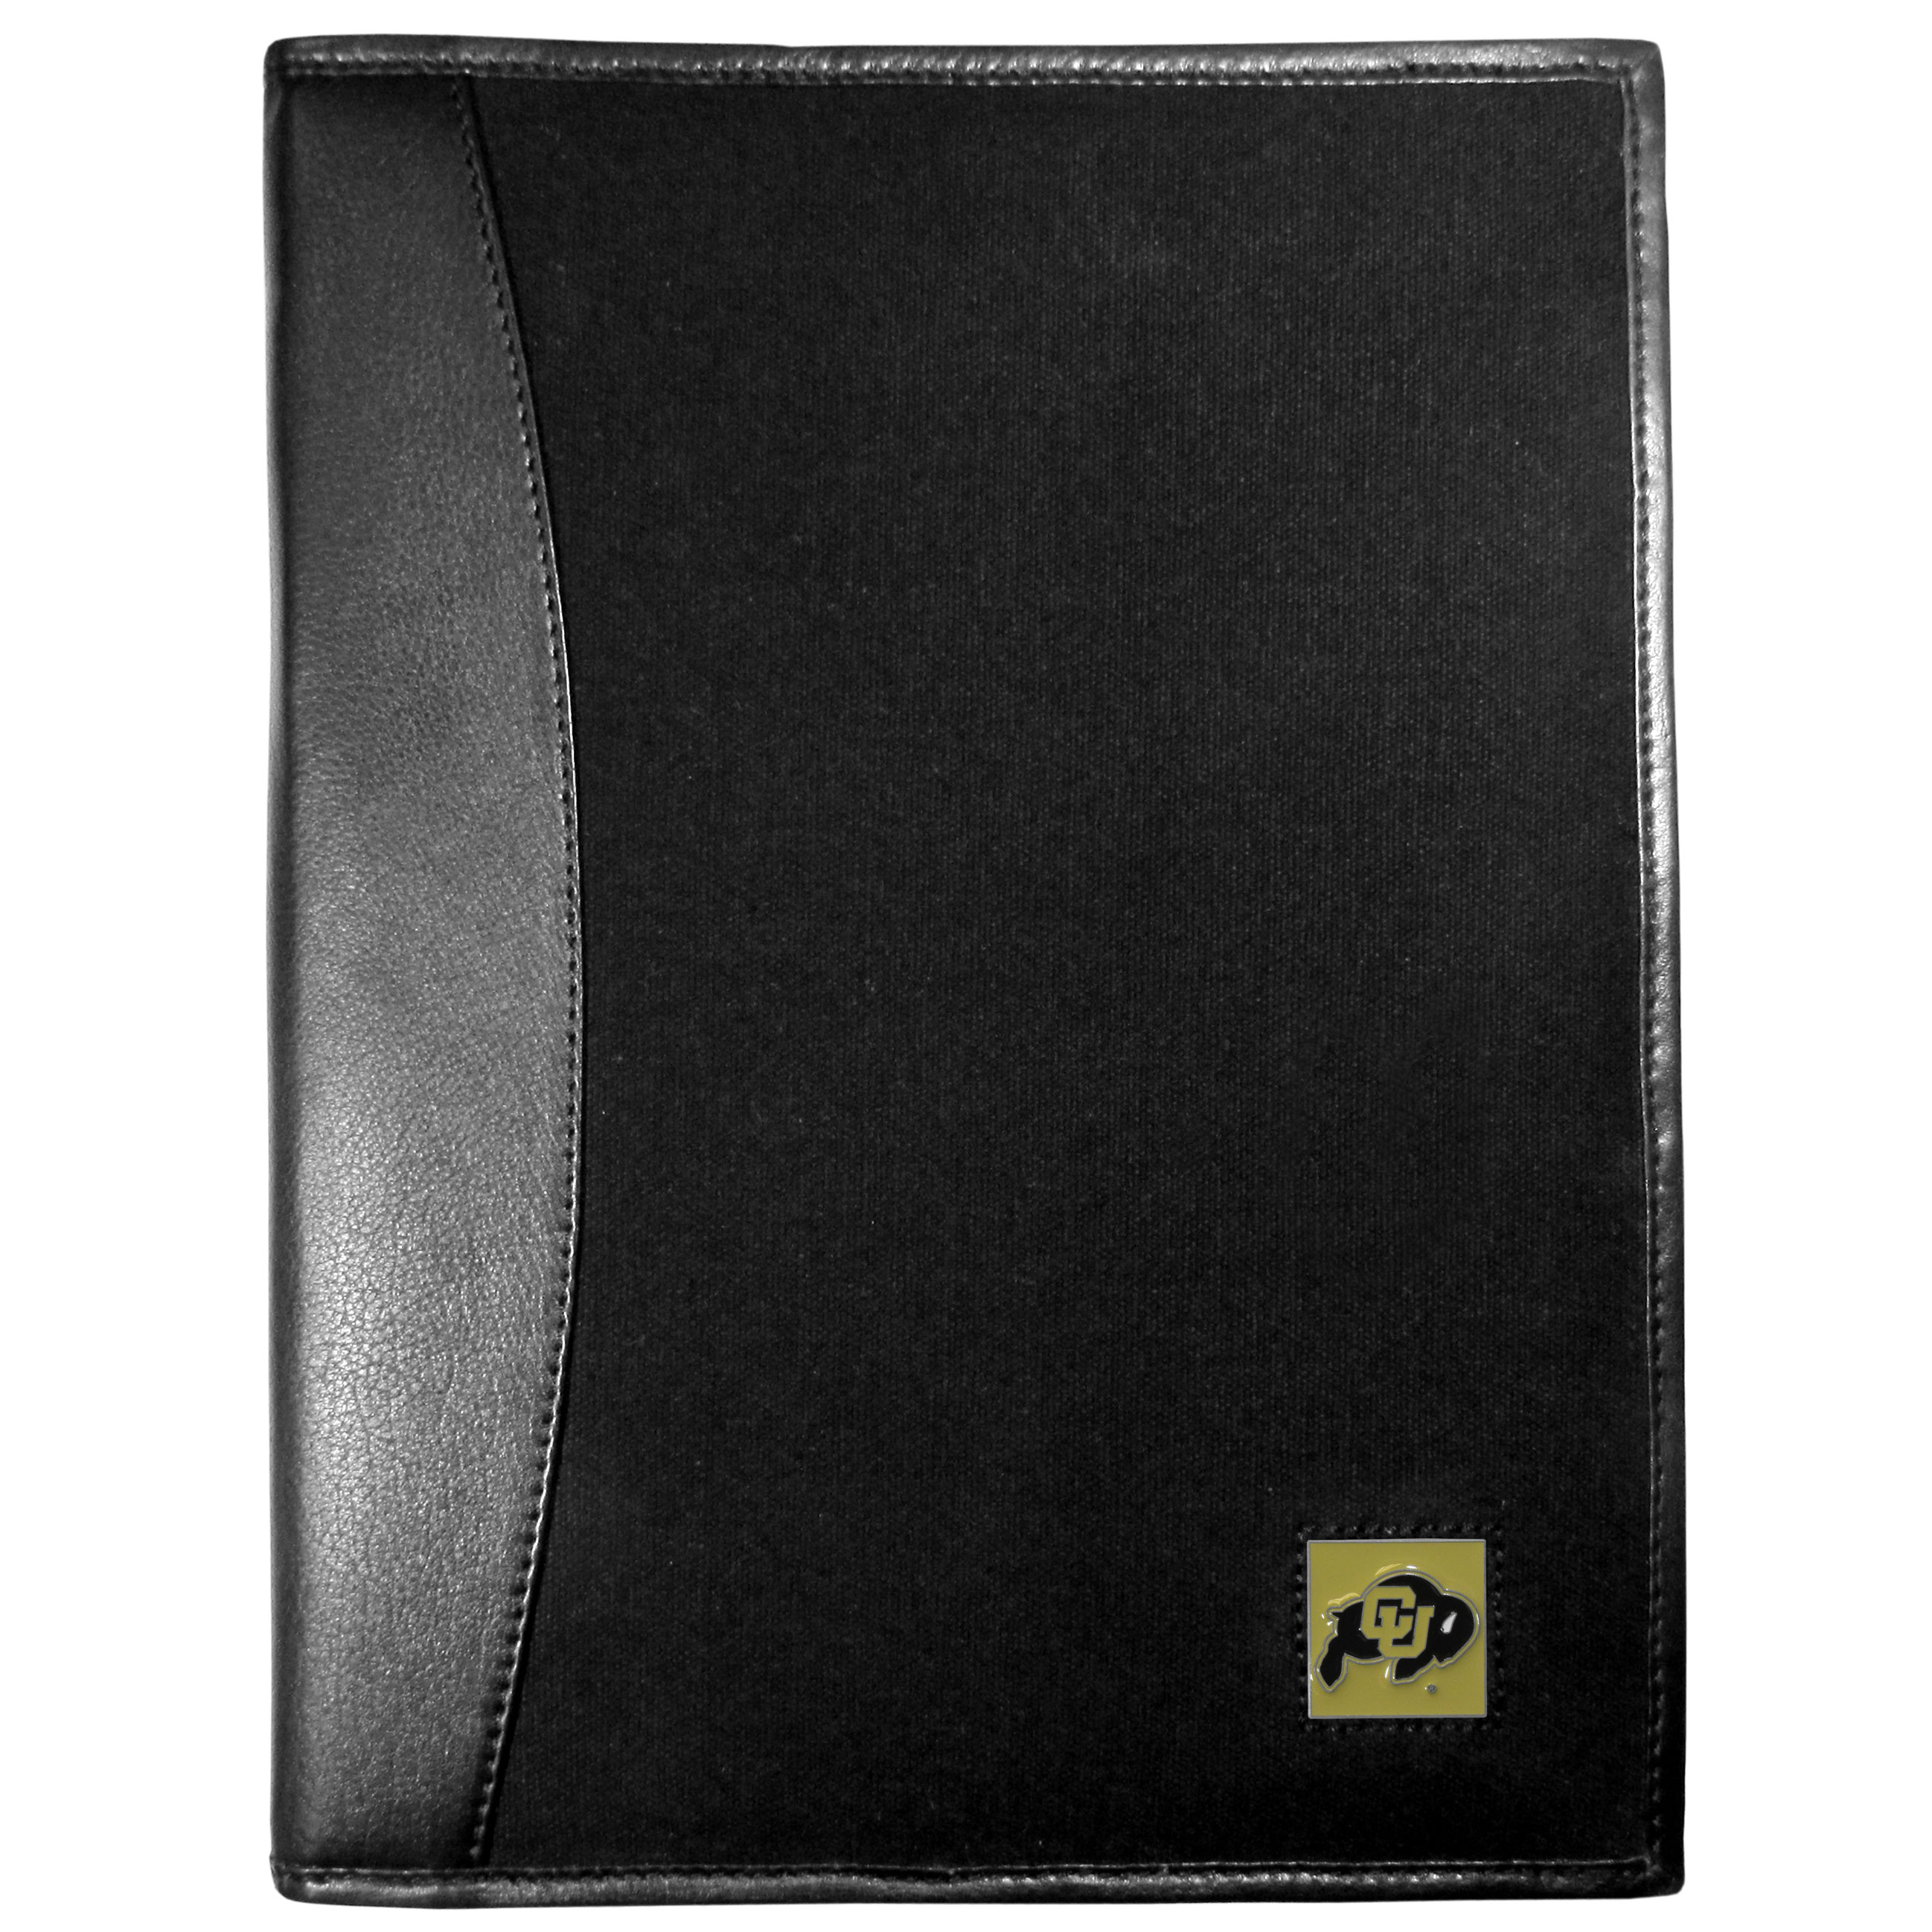 Colorado Buffaloes Leather and Canvas Padfolio - Our leather and canvas padfolio perfectly blends form and function. The attractive portfolio is bound in fine grain leather with an attractive canvas finish and the interior is a soft nylon. This high quality business accessory also features a fully cast metal Colorado Buffaloes emblem that is subtly set in the corner of the organizer. It is packed with features like 6 card slots for badges, business cards, hotel keys or credit cards and ID with a large pocket for loose papers and a writing tablet slot making it a must-have for the professional on the go.